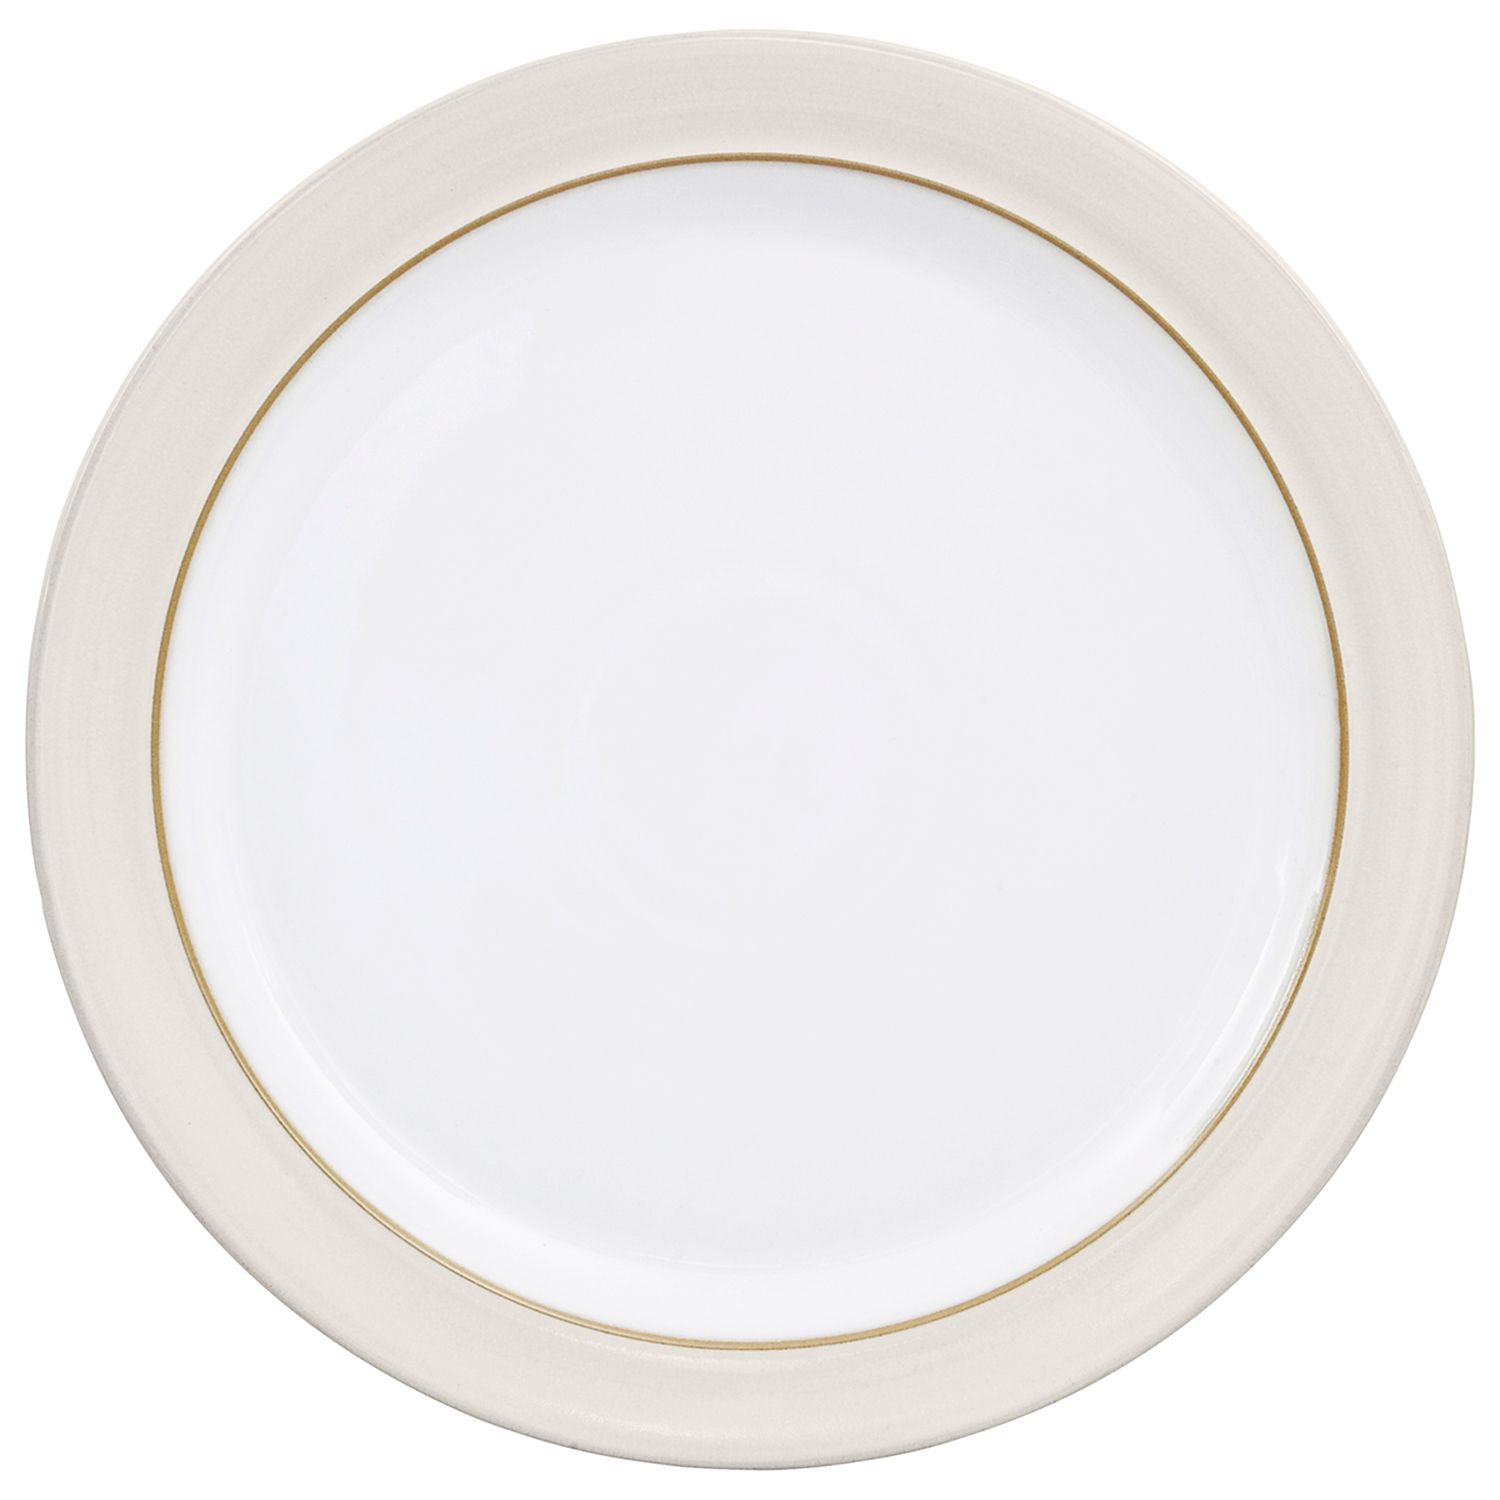 Denby Denby Natural Canvas Small Plate, Dia.18cm